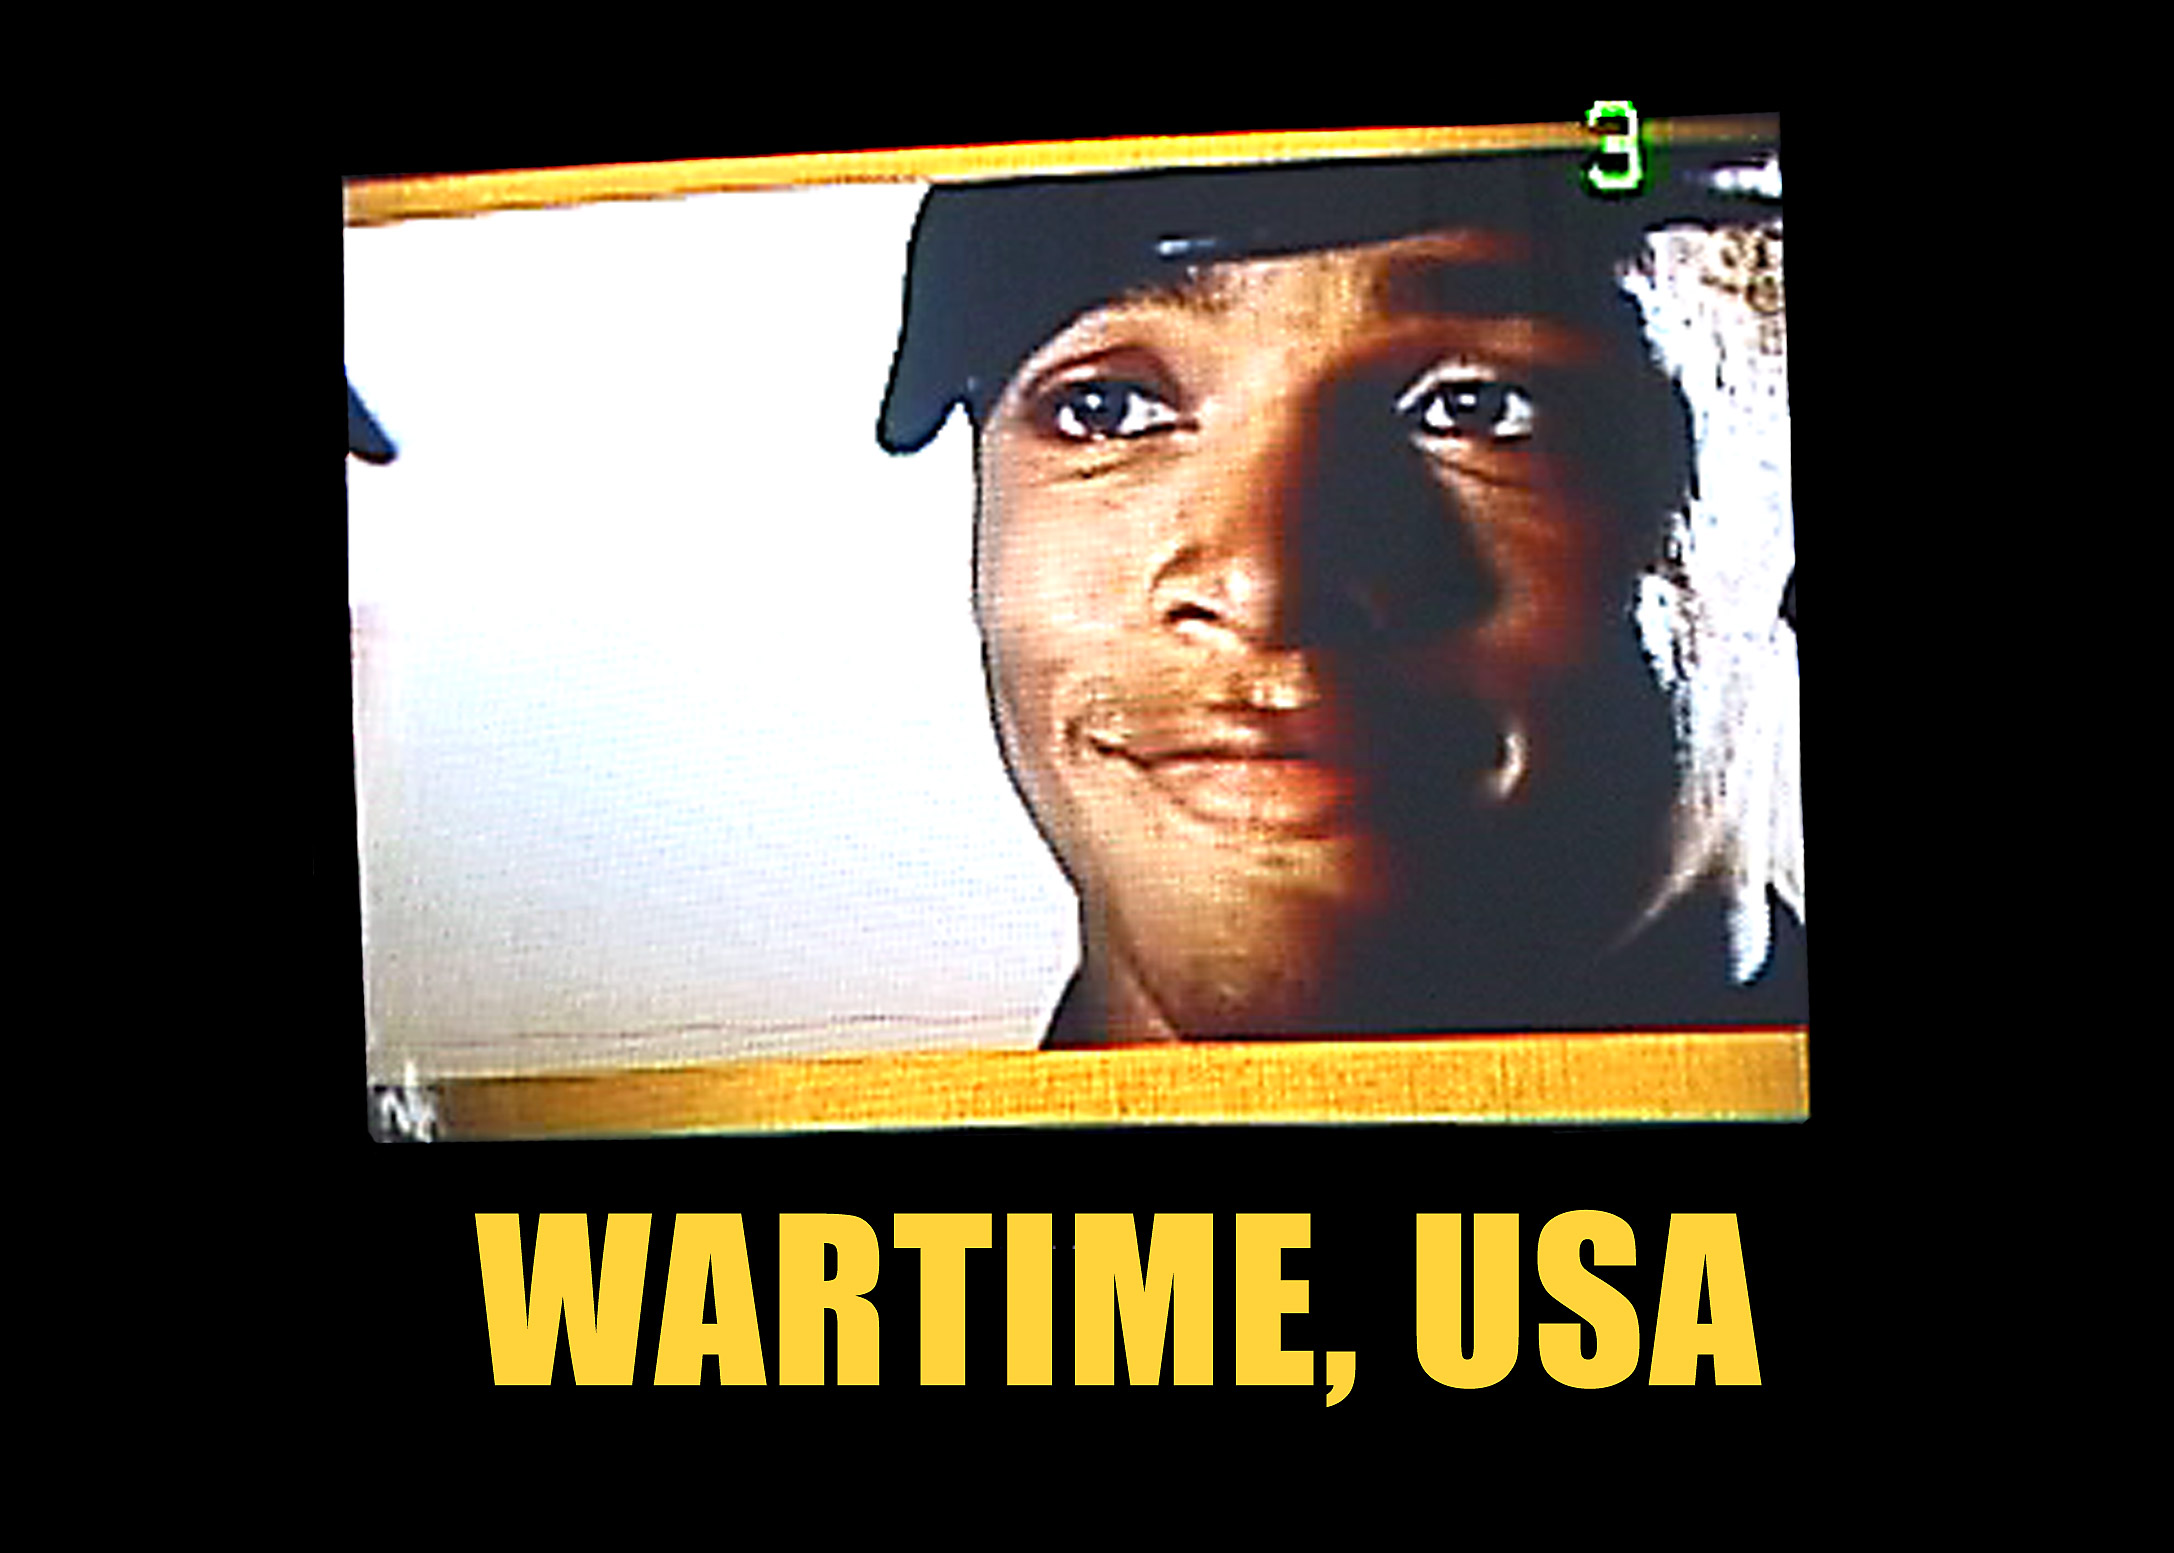 Wartime, USA  2006 | Color video | 20:00  An examination of Americans in a time of war, revealing a passive and pliable culture of consumption who's participants are only too willing to loo the other way.    More about Wartime, USA